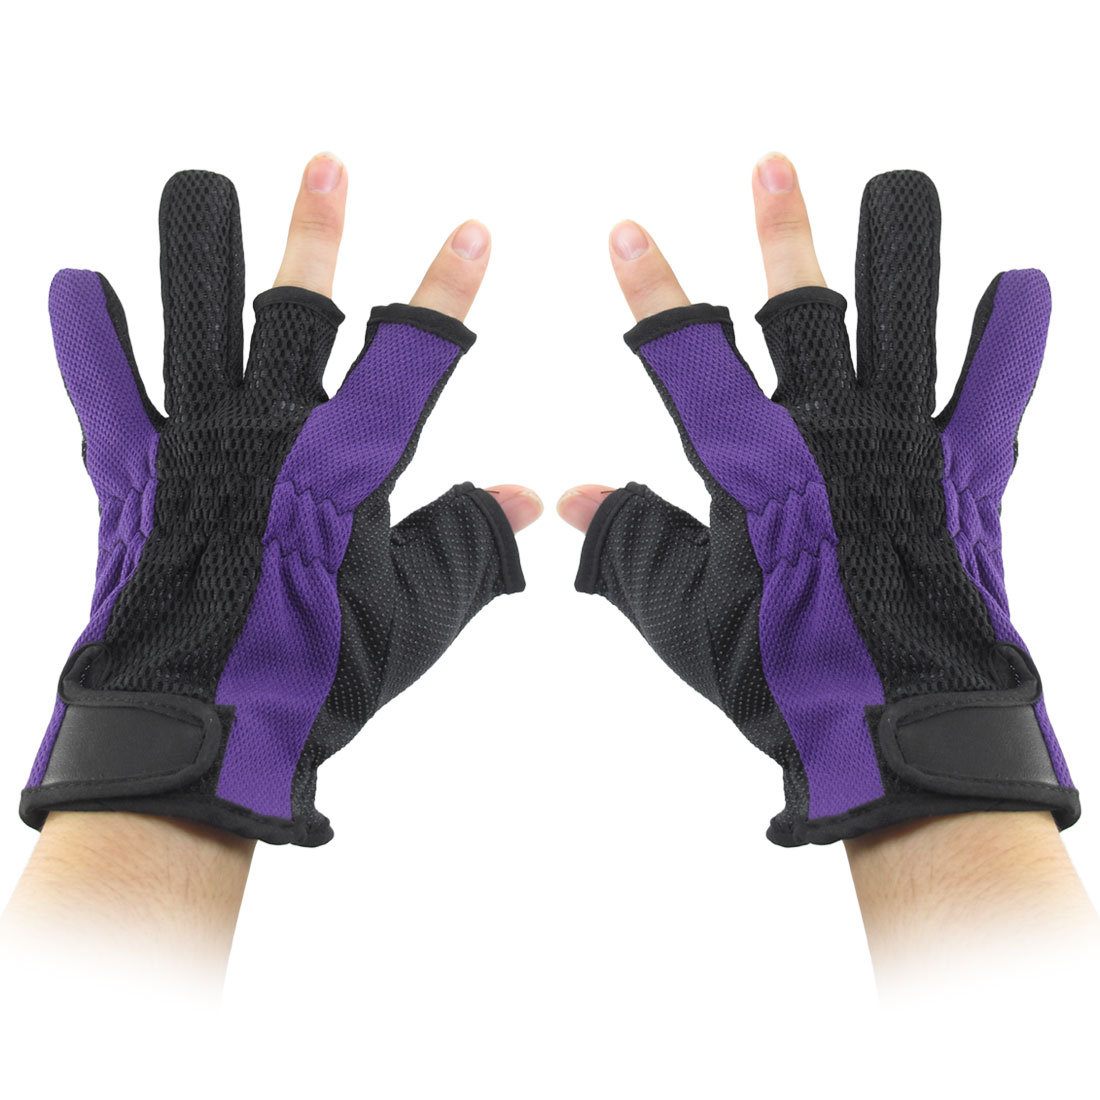 Antislip Palm Loop Hook Fastener 3 Fingerless Dark Purple Black Fishing Gloves